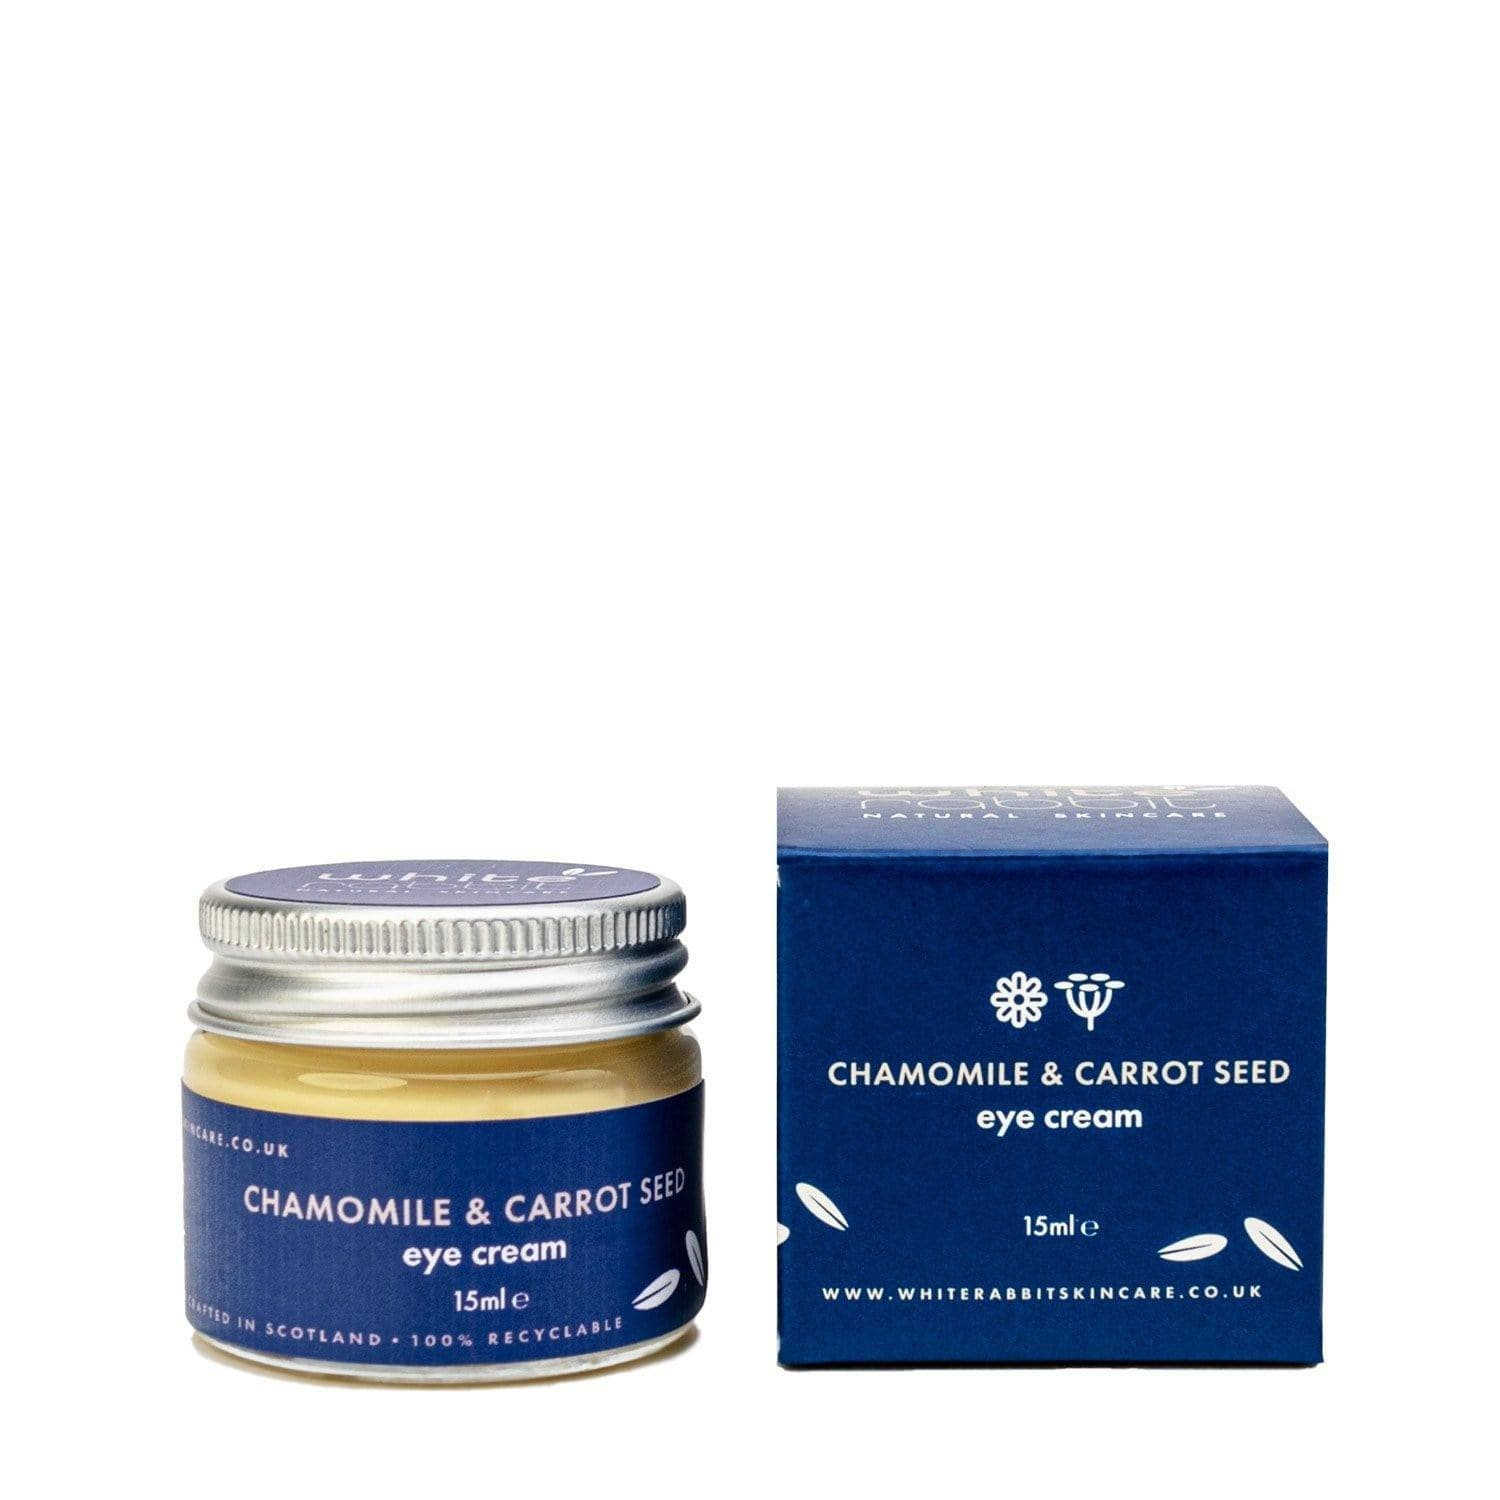 Chamomile and Carrot Seed Eye Cream